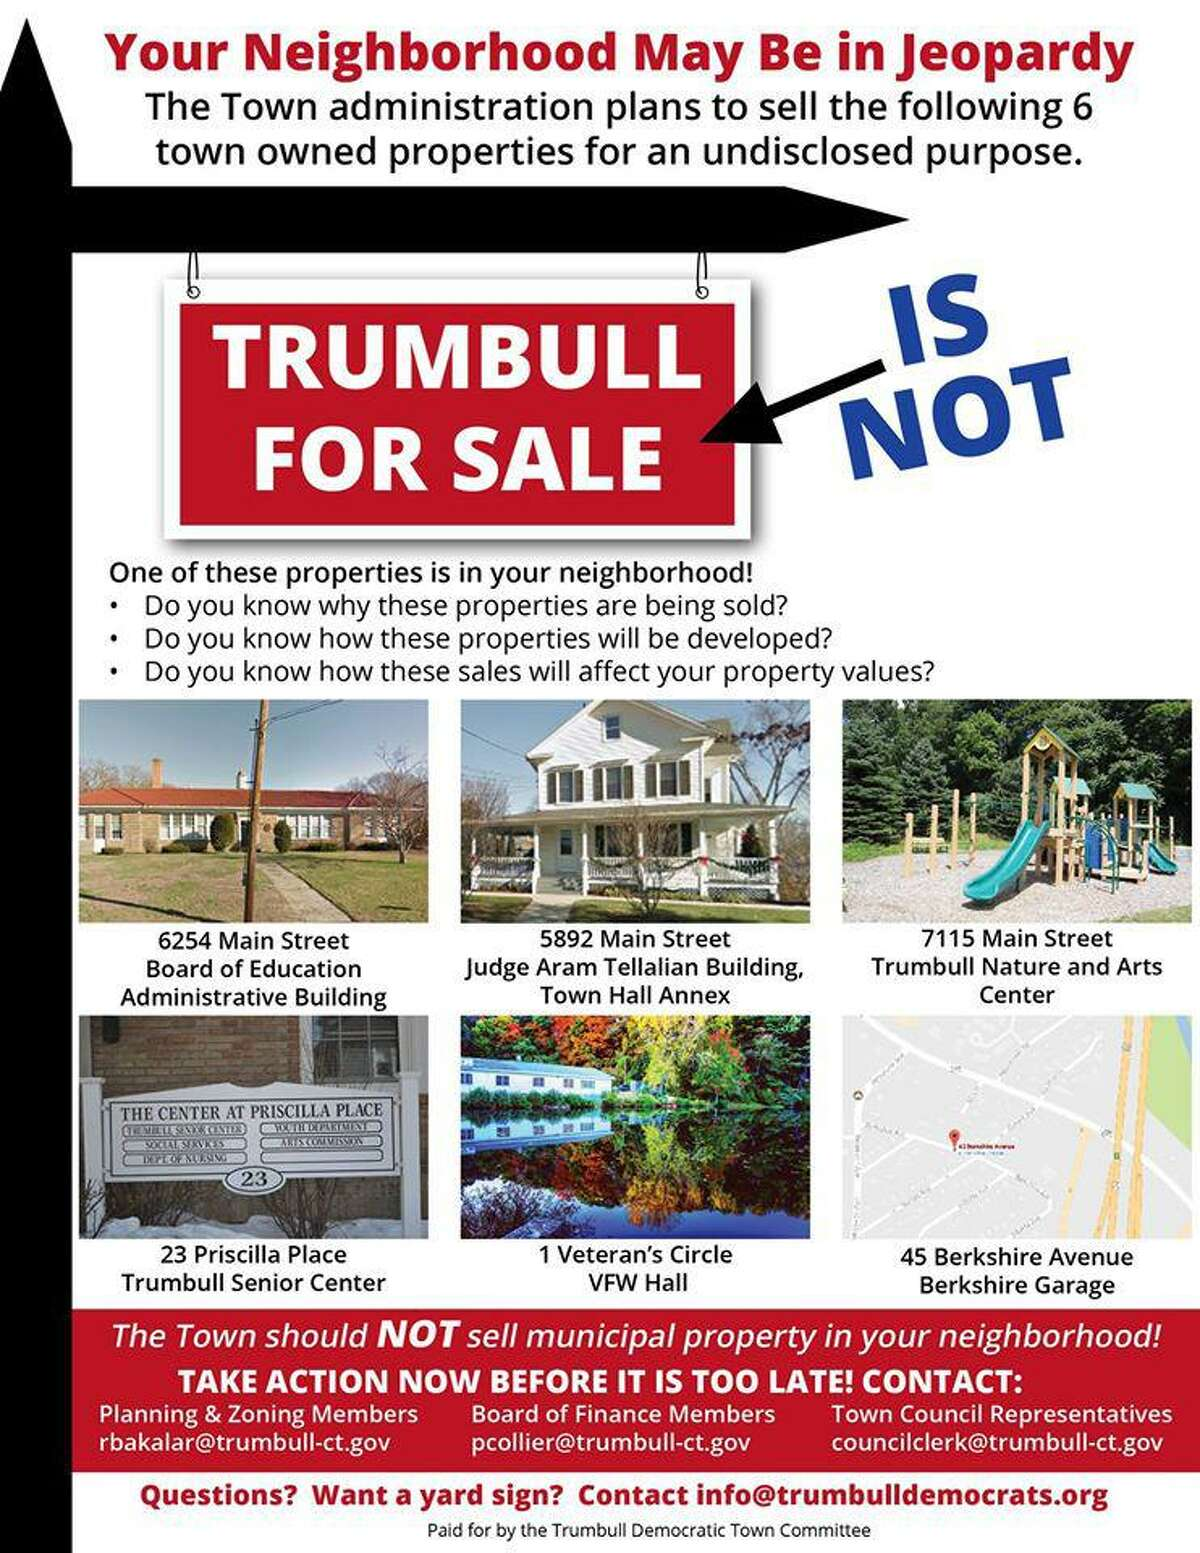 The Trumbull Democratic Town Committee distributed thousands of these fliers all over town alerting people of the town's desire the sell six properties. First Selectman Tim Herbst called the campaign